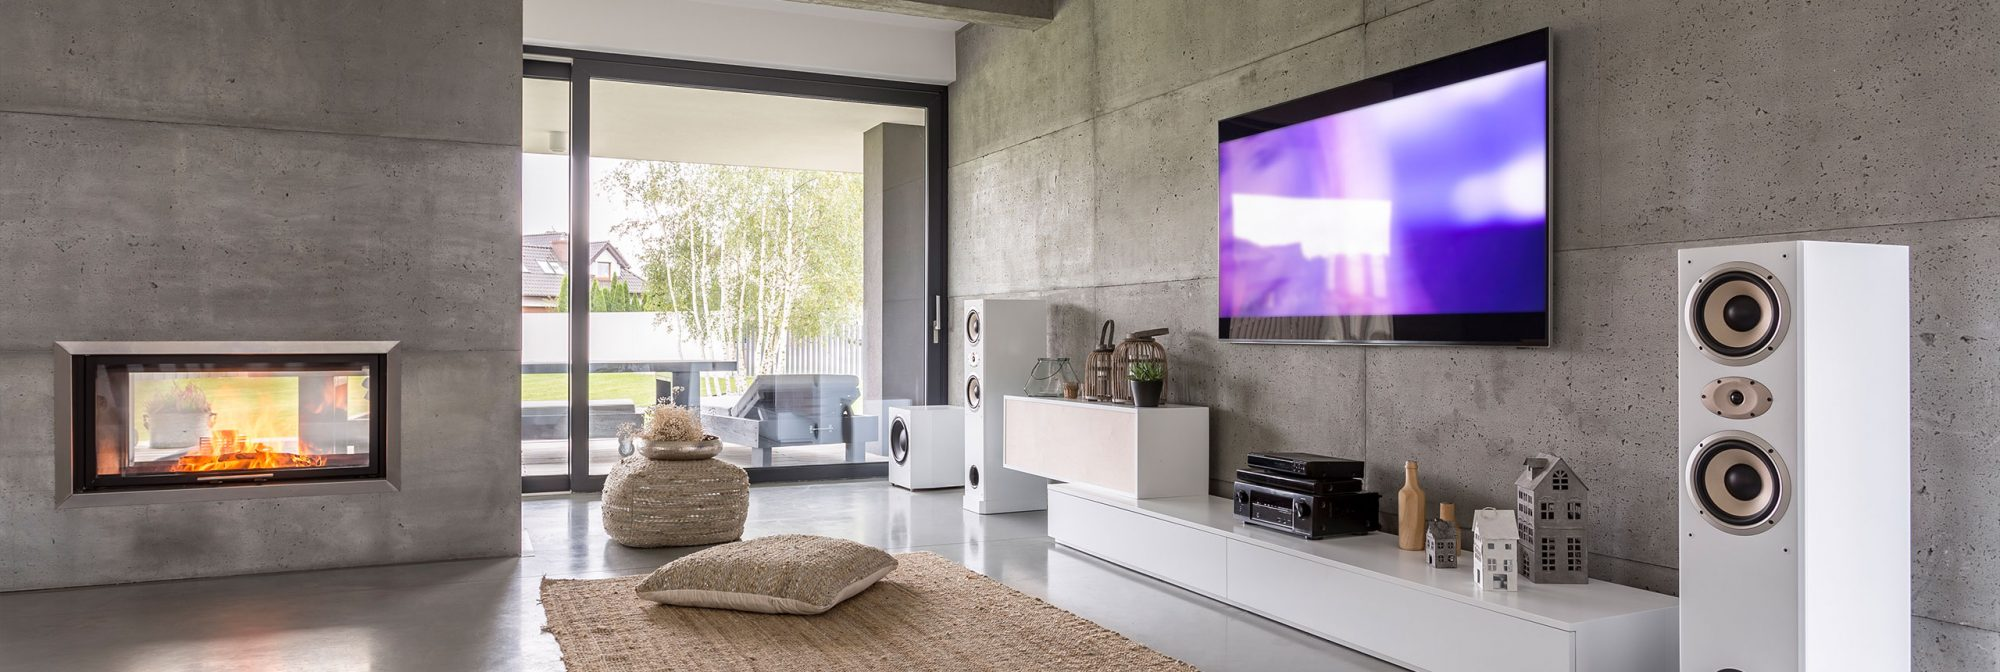 Image of living room with home audio